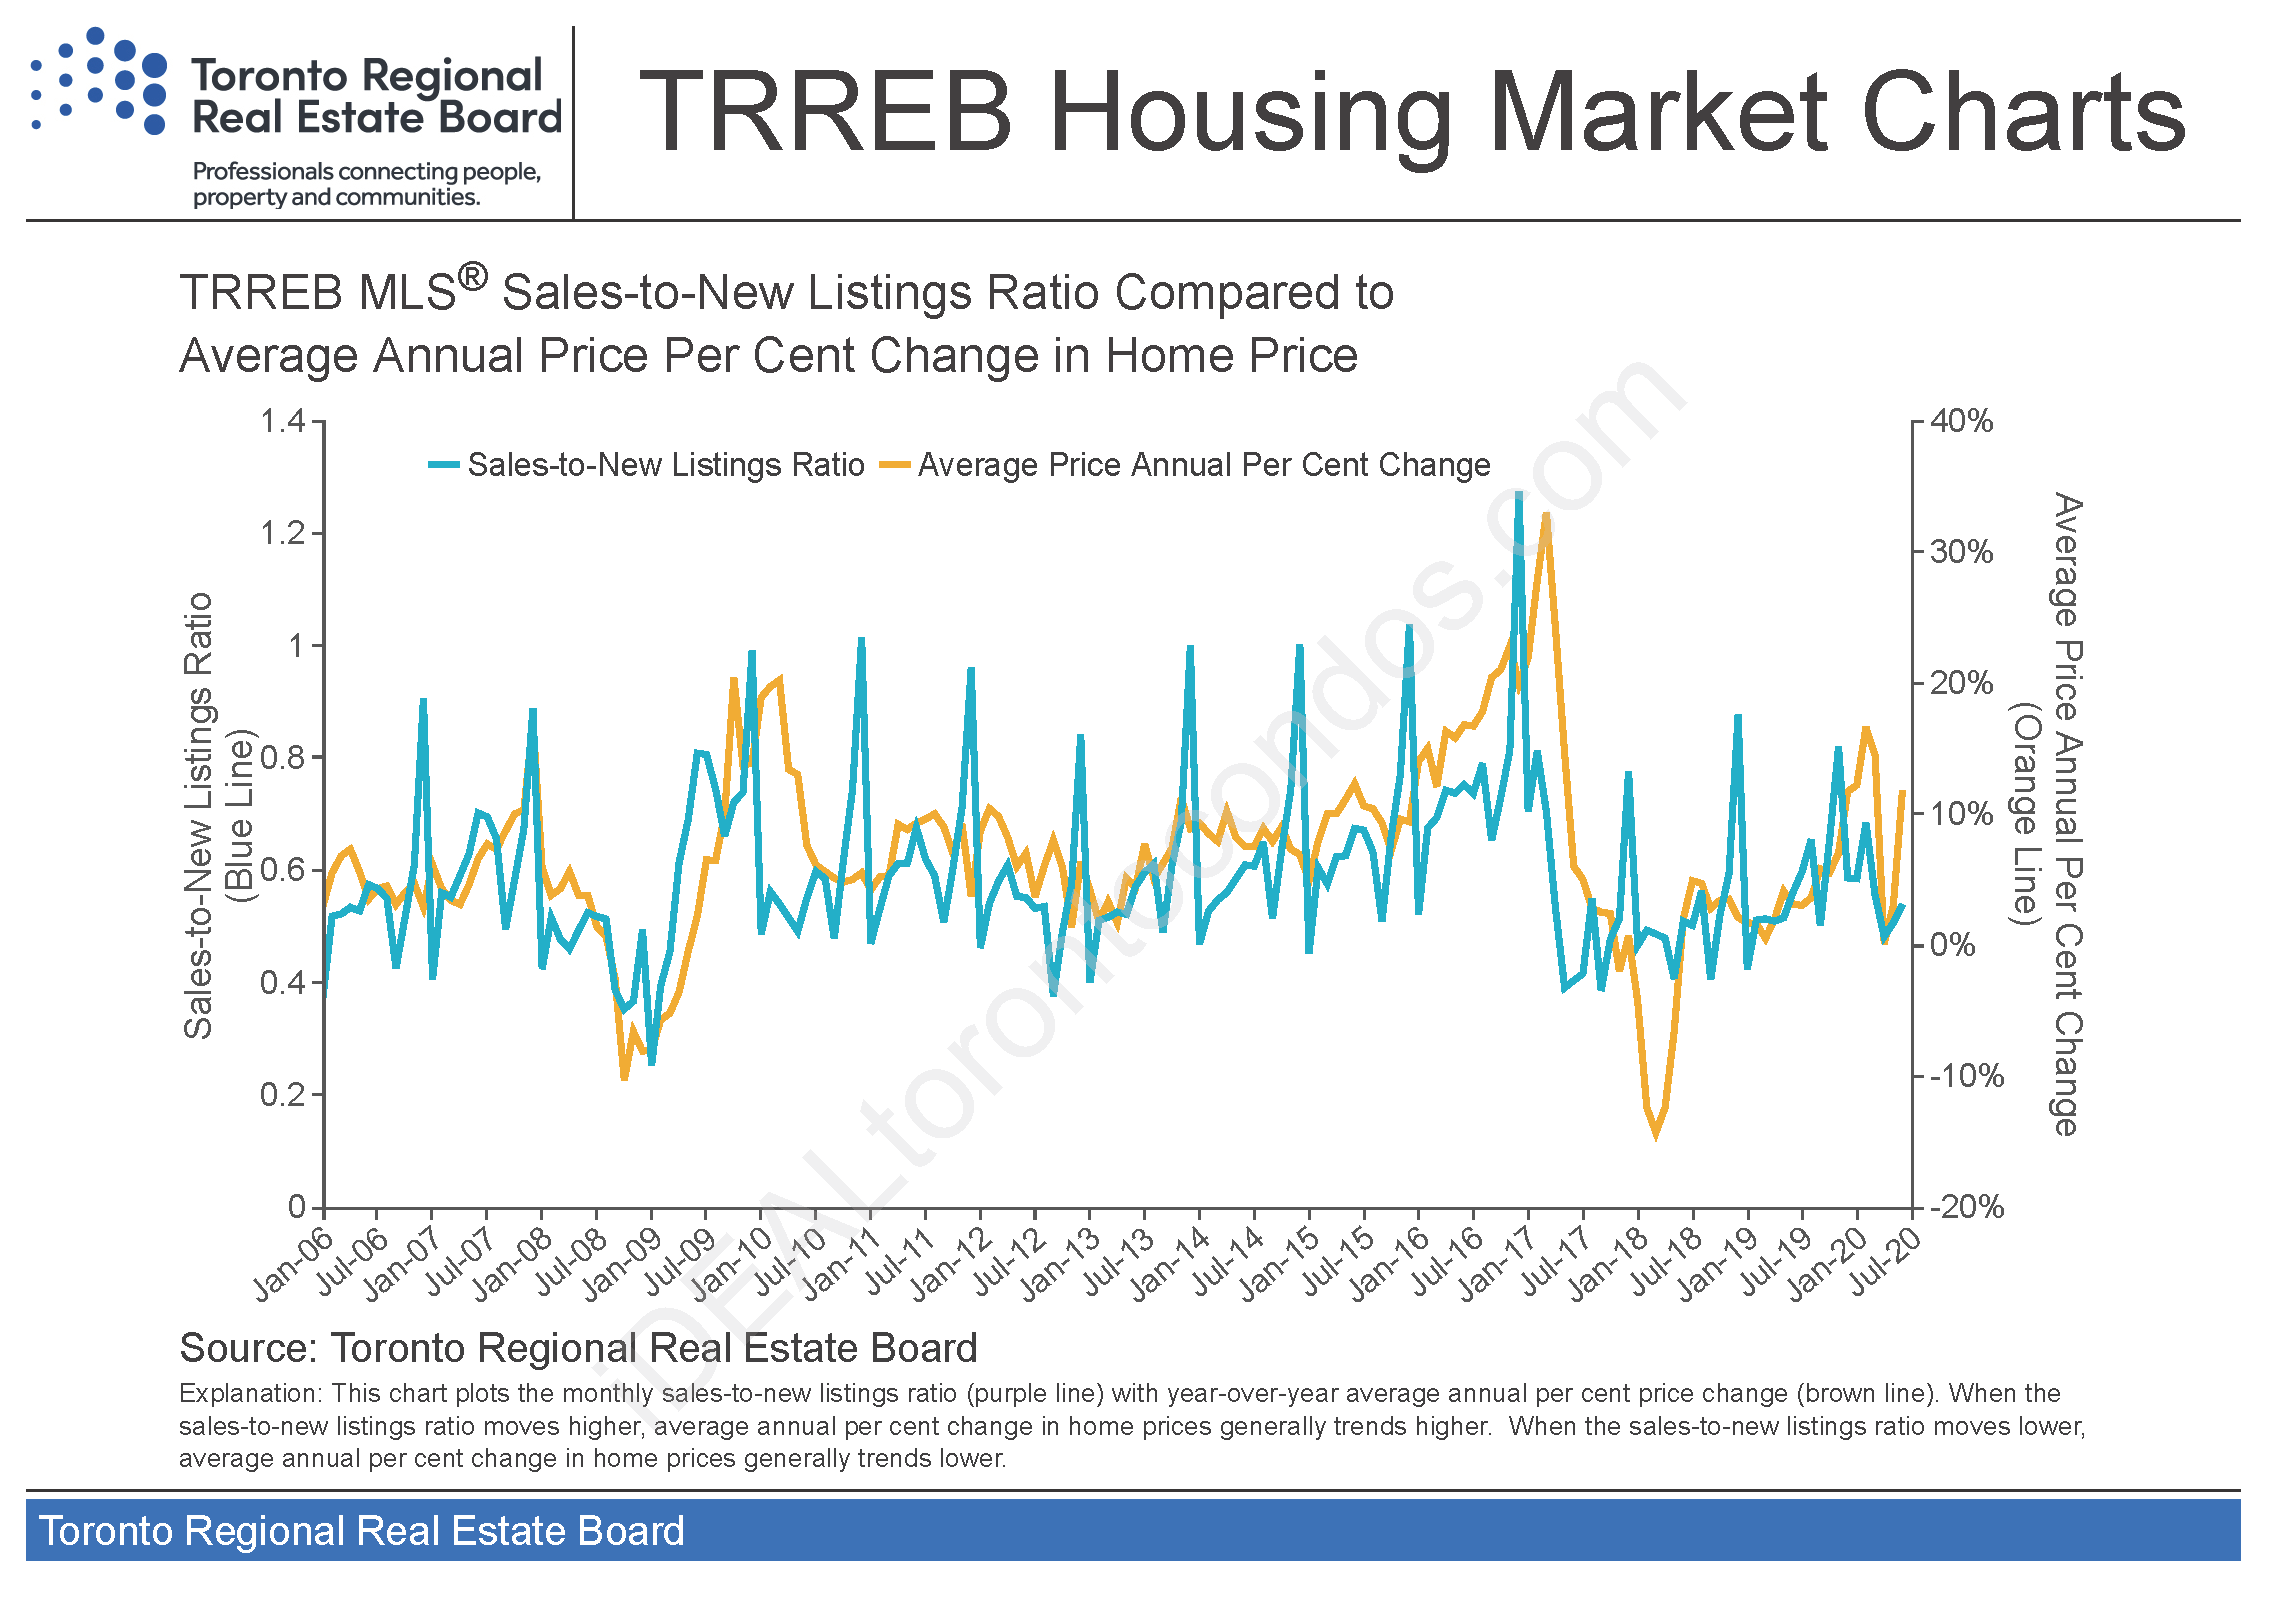 TREB_Housing Market Charts March 2020 Page